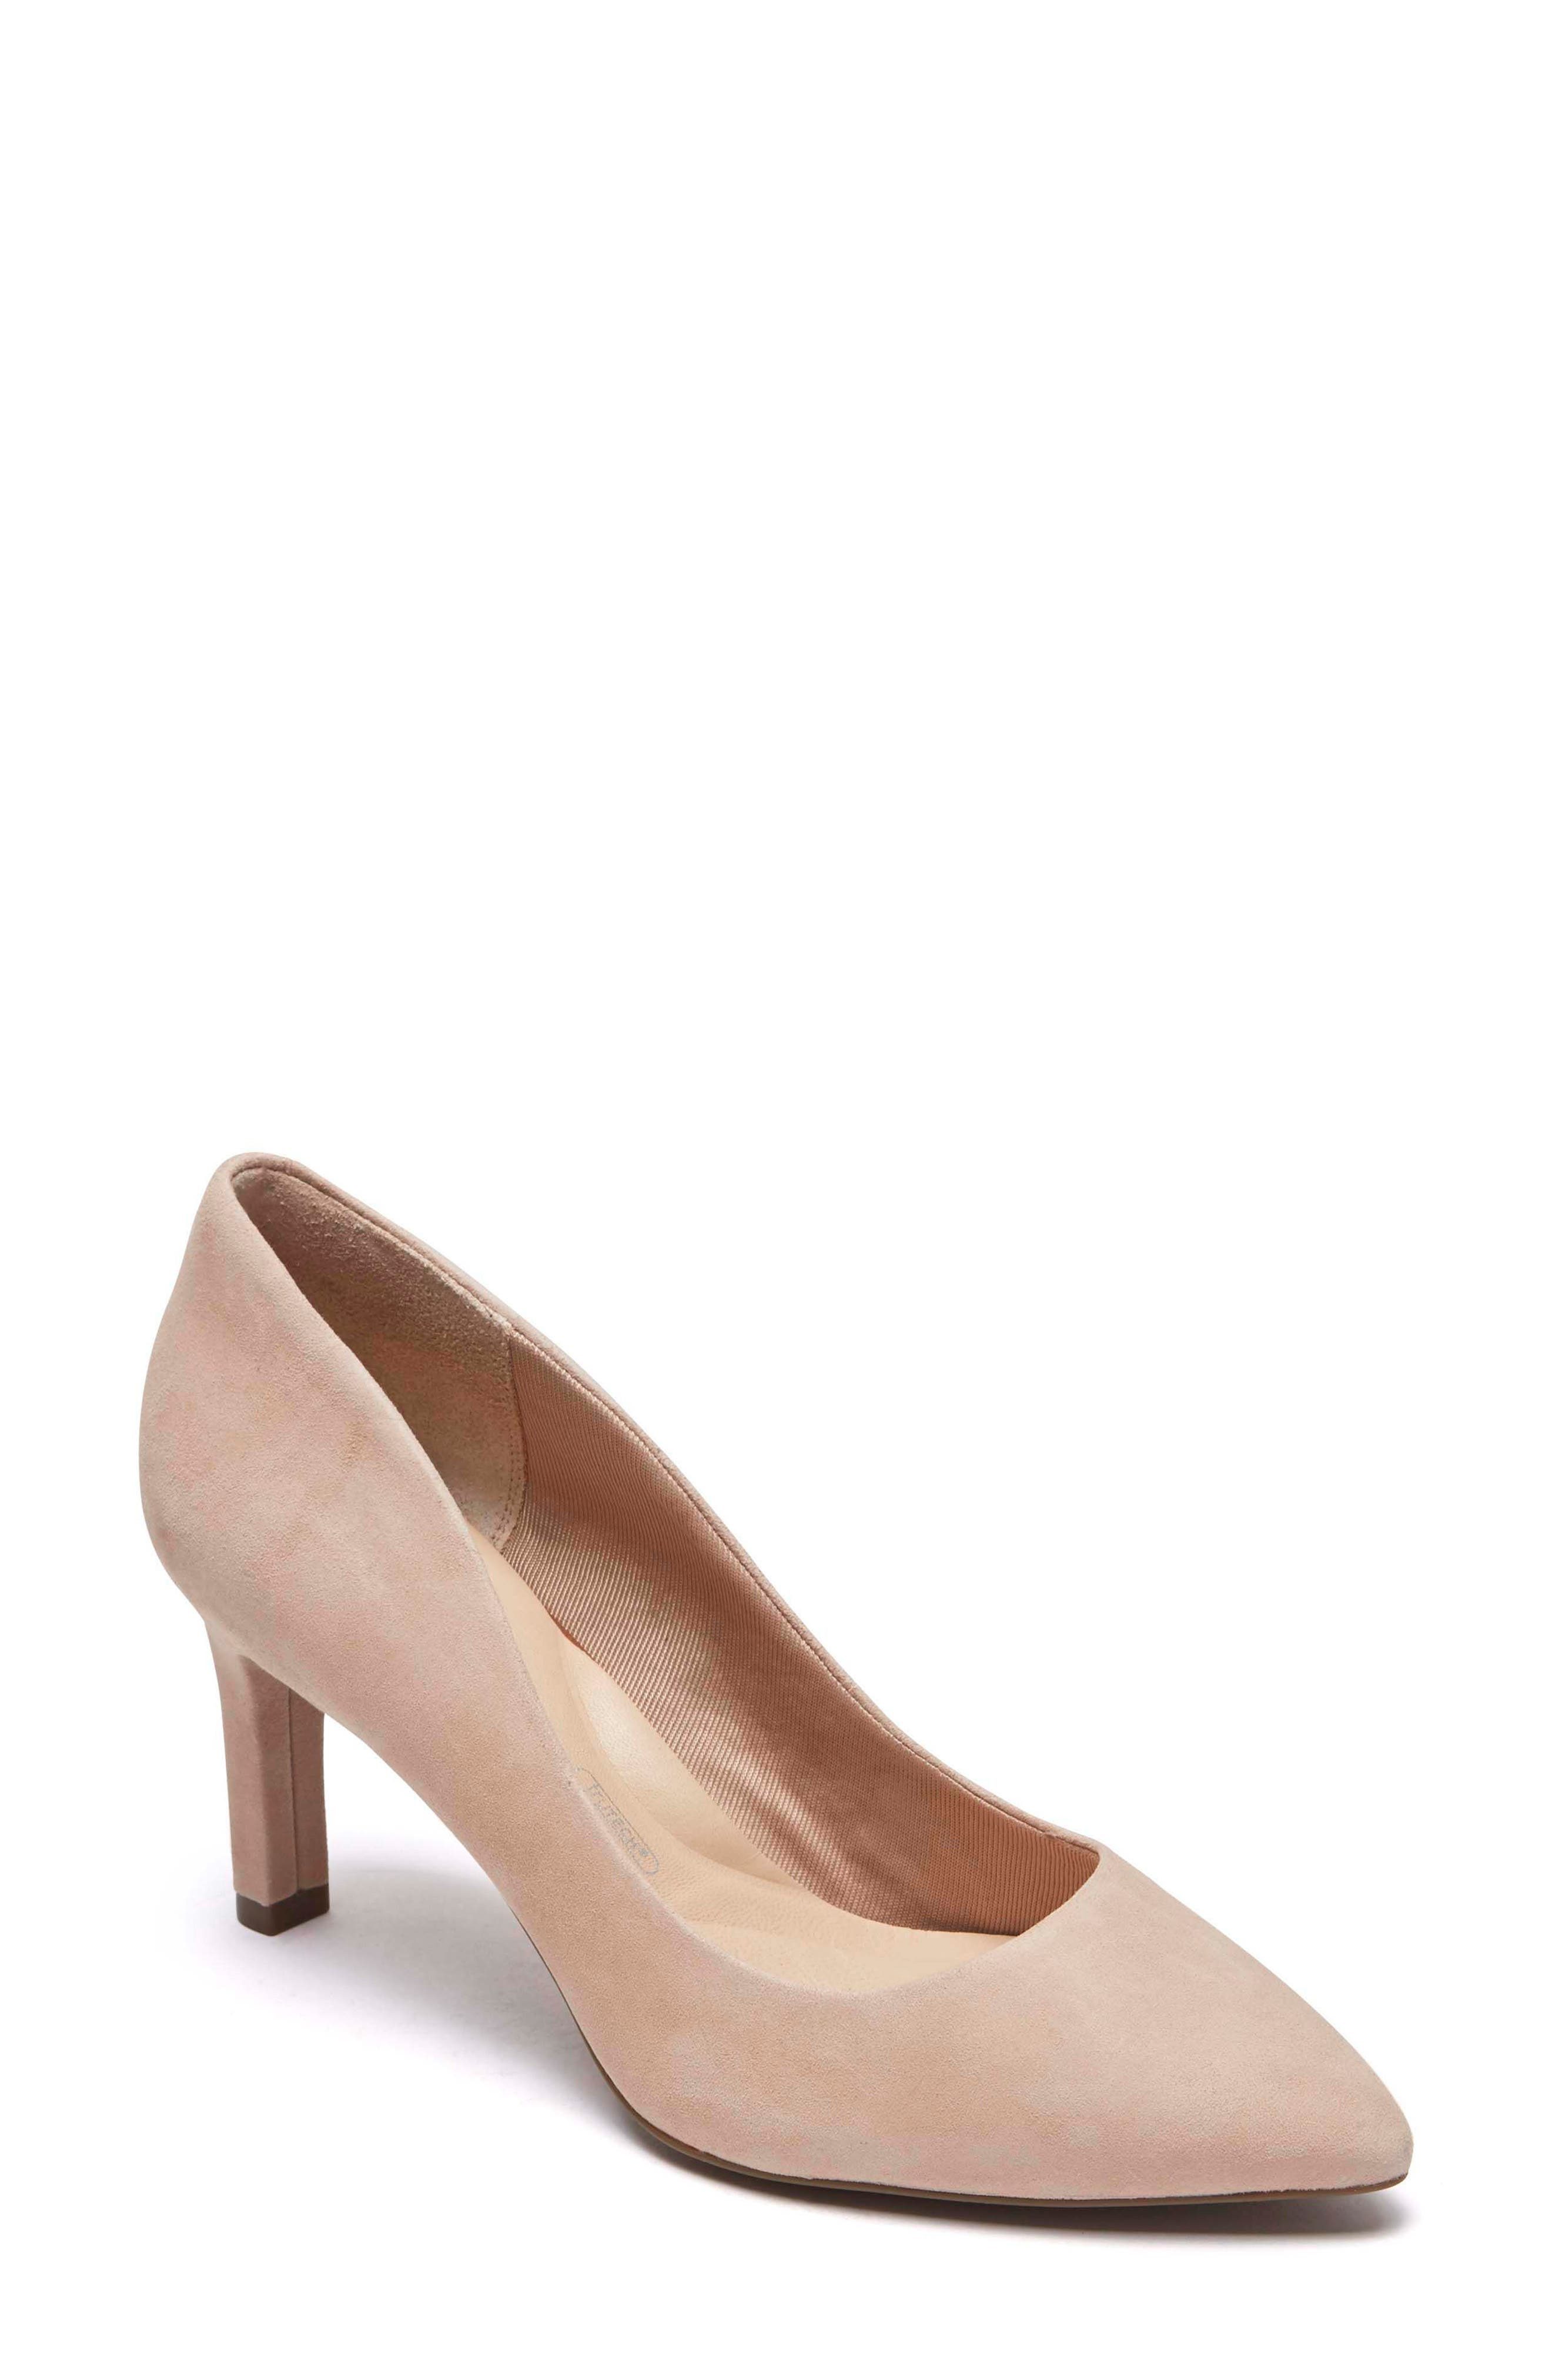 ROCKPORT Total Motion Luxe Valerie Pump, Main, color, BLUSH SUEDE